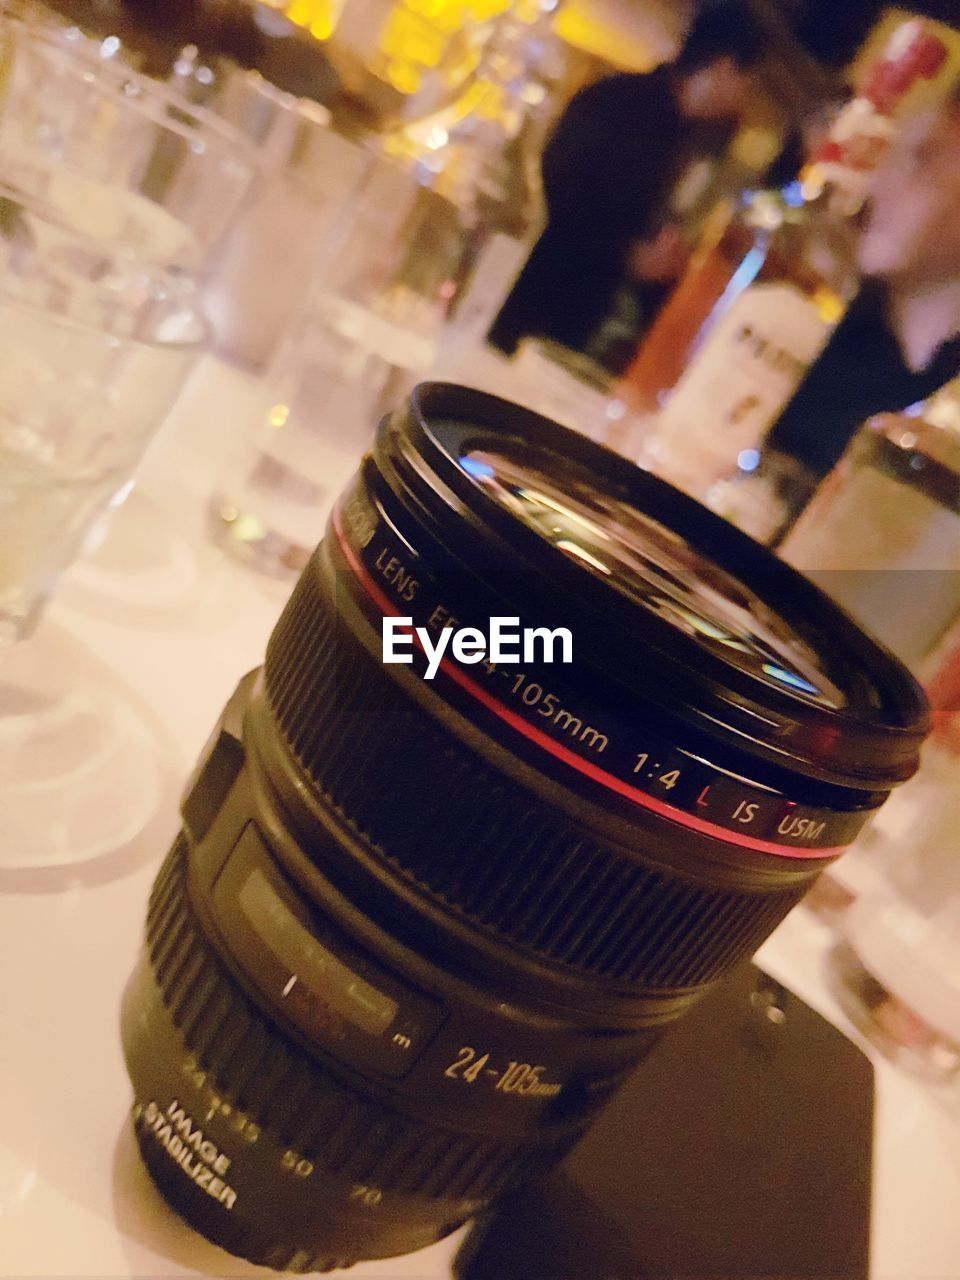 focus on foreground, close-up, indoors, food and drink, still life, text, bottle, refreshment, food, incidental people, container, drink, table, arts culture and entertainment, high angle view, photography themes, western script, business, alcohol